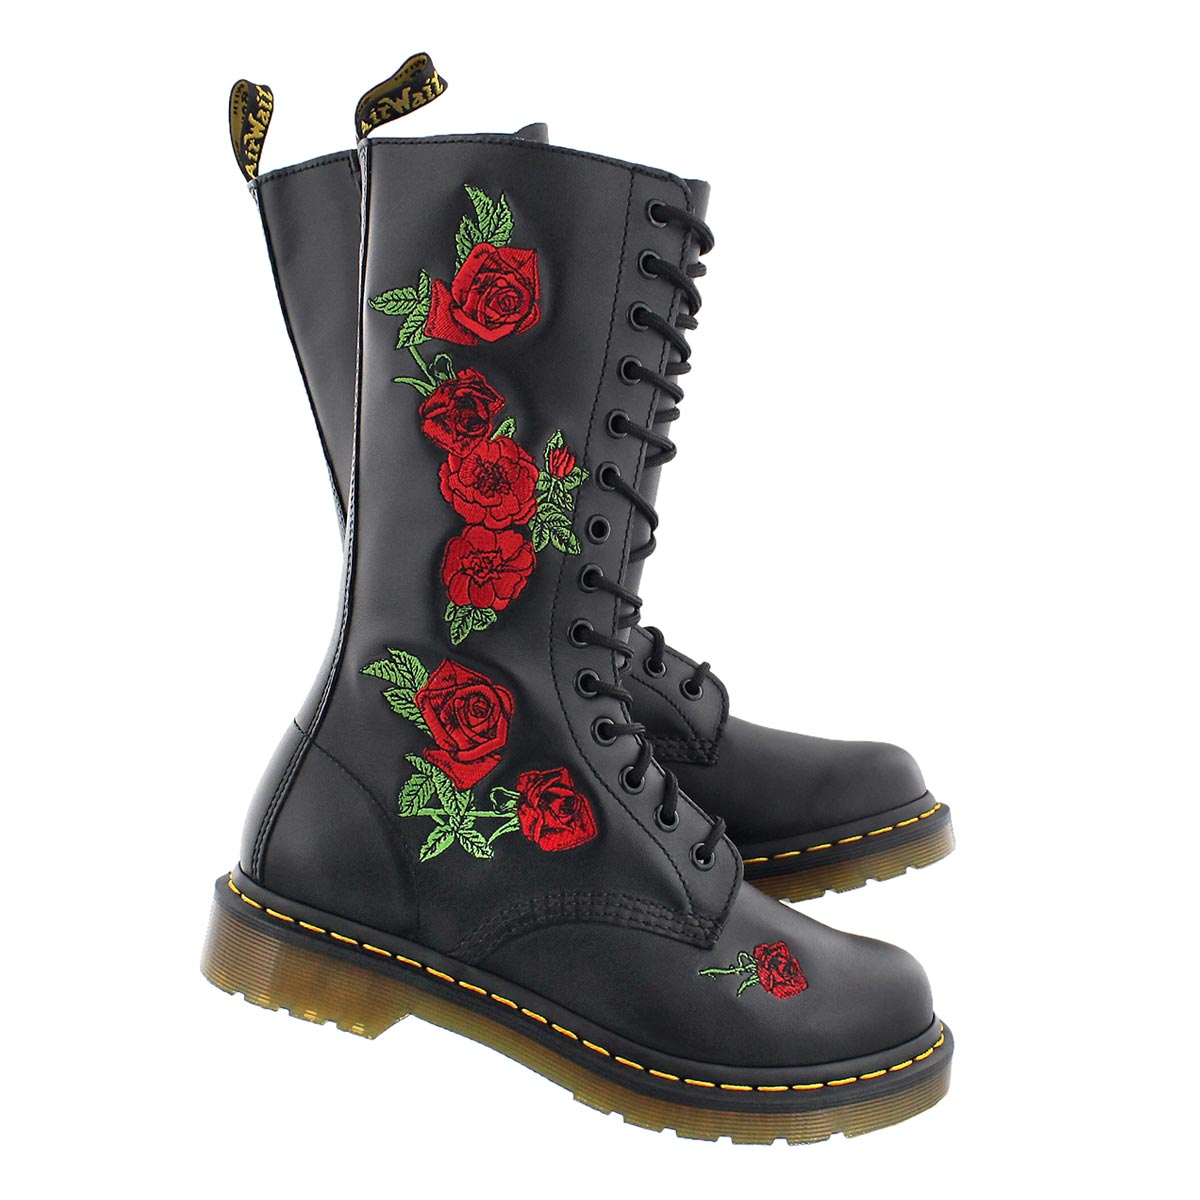 Lds Vonda Embroidery black/red tall boot